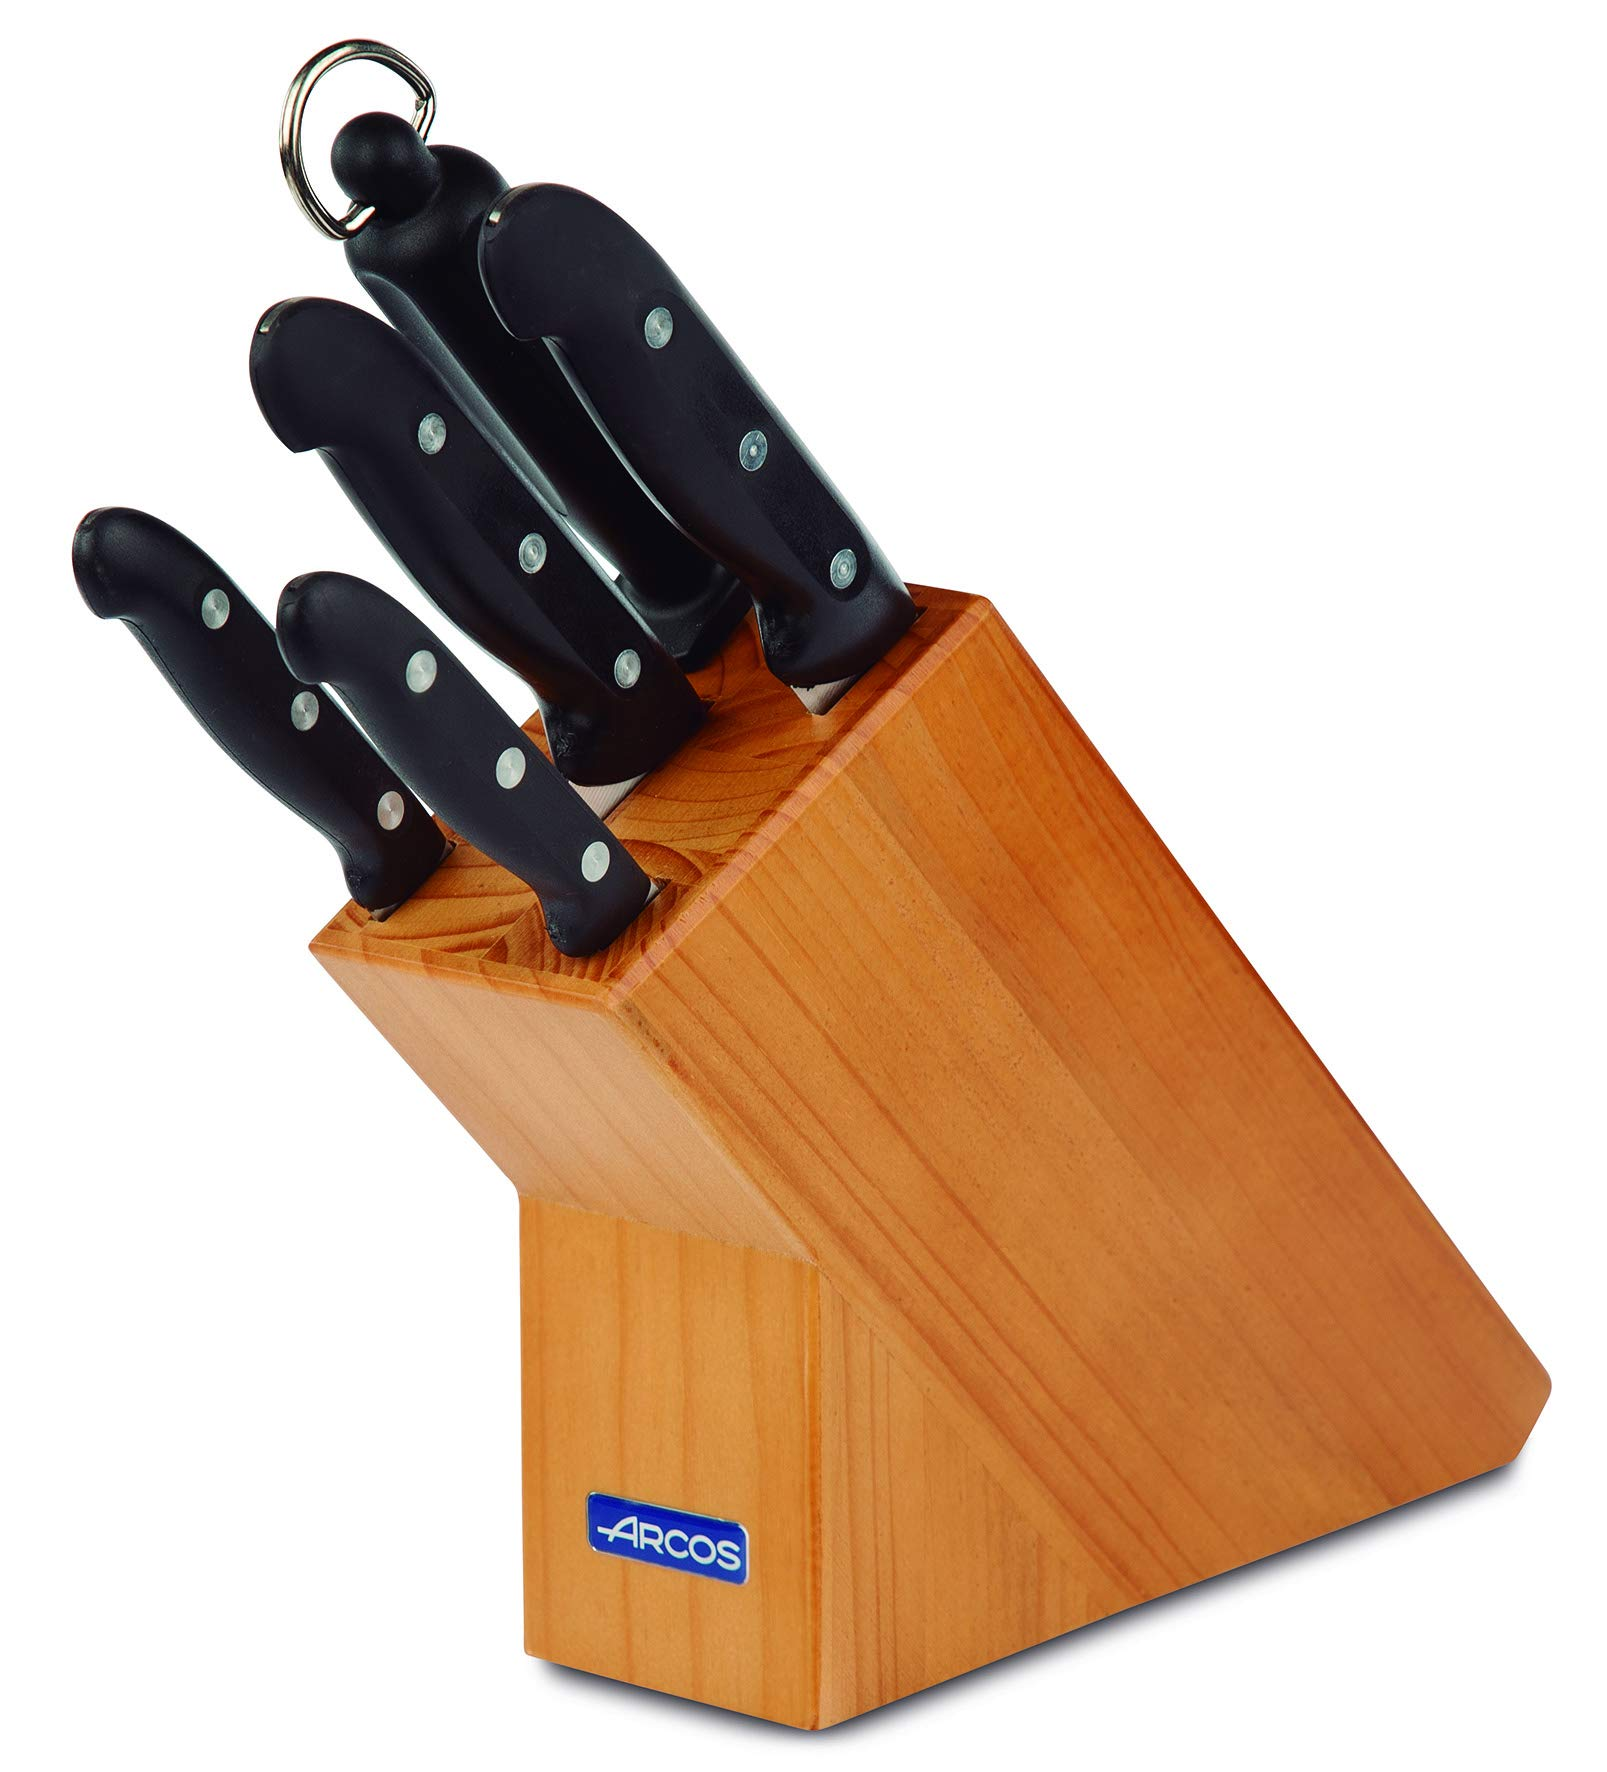 Arcos Maitre 6 Pcs Knife Set